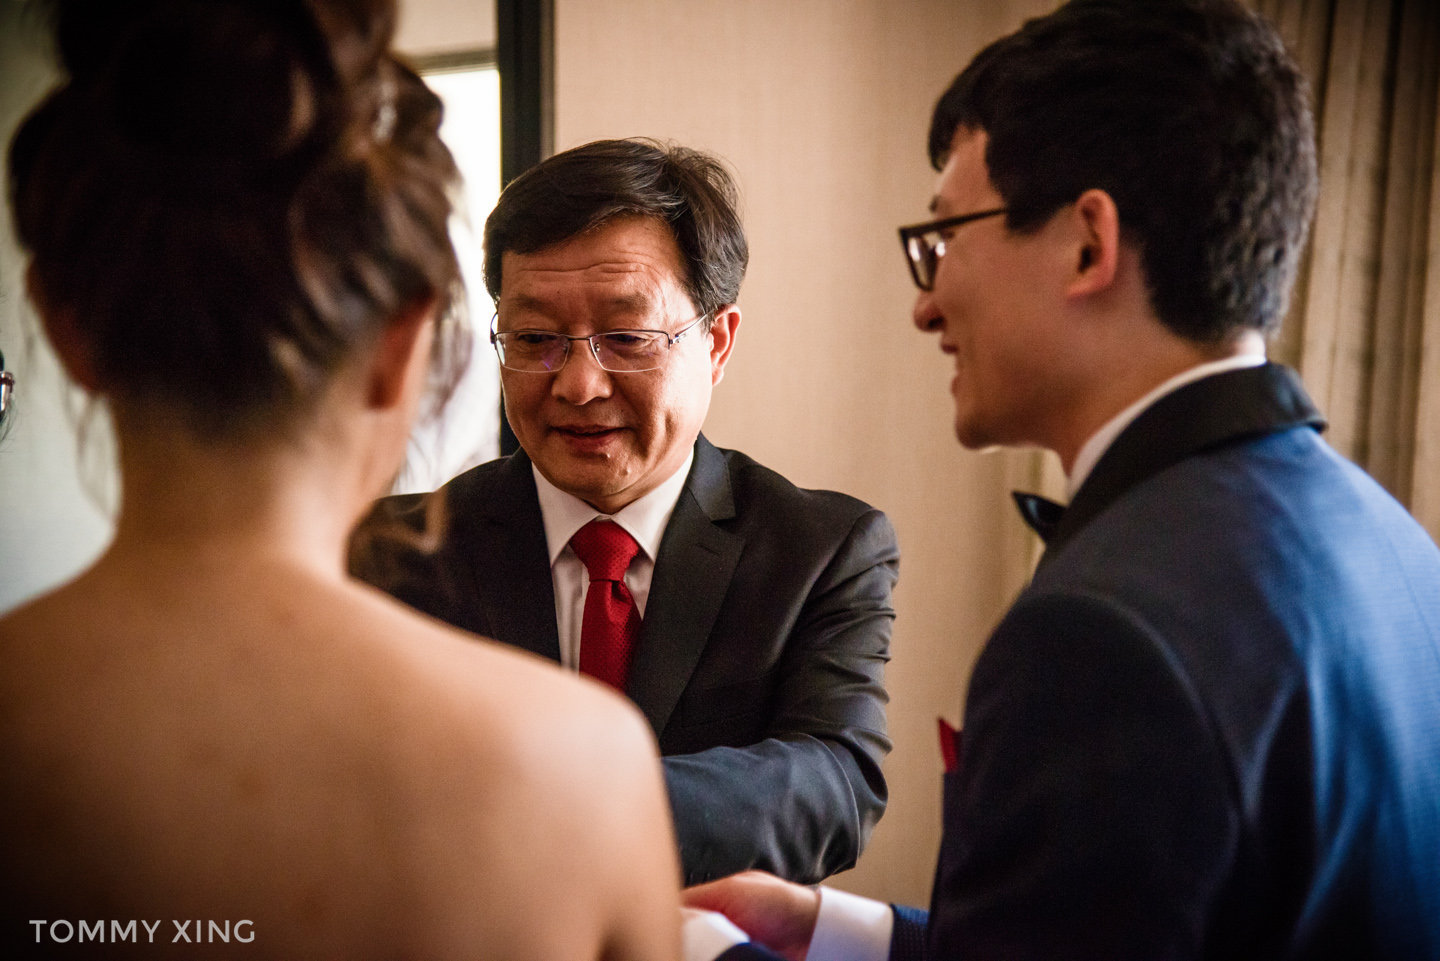 Los Angeles Wedding Photographer 洛杉矶婚礼婚纱摄影师 Tommy Xing-62.JPG